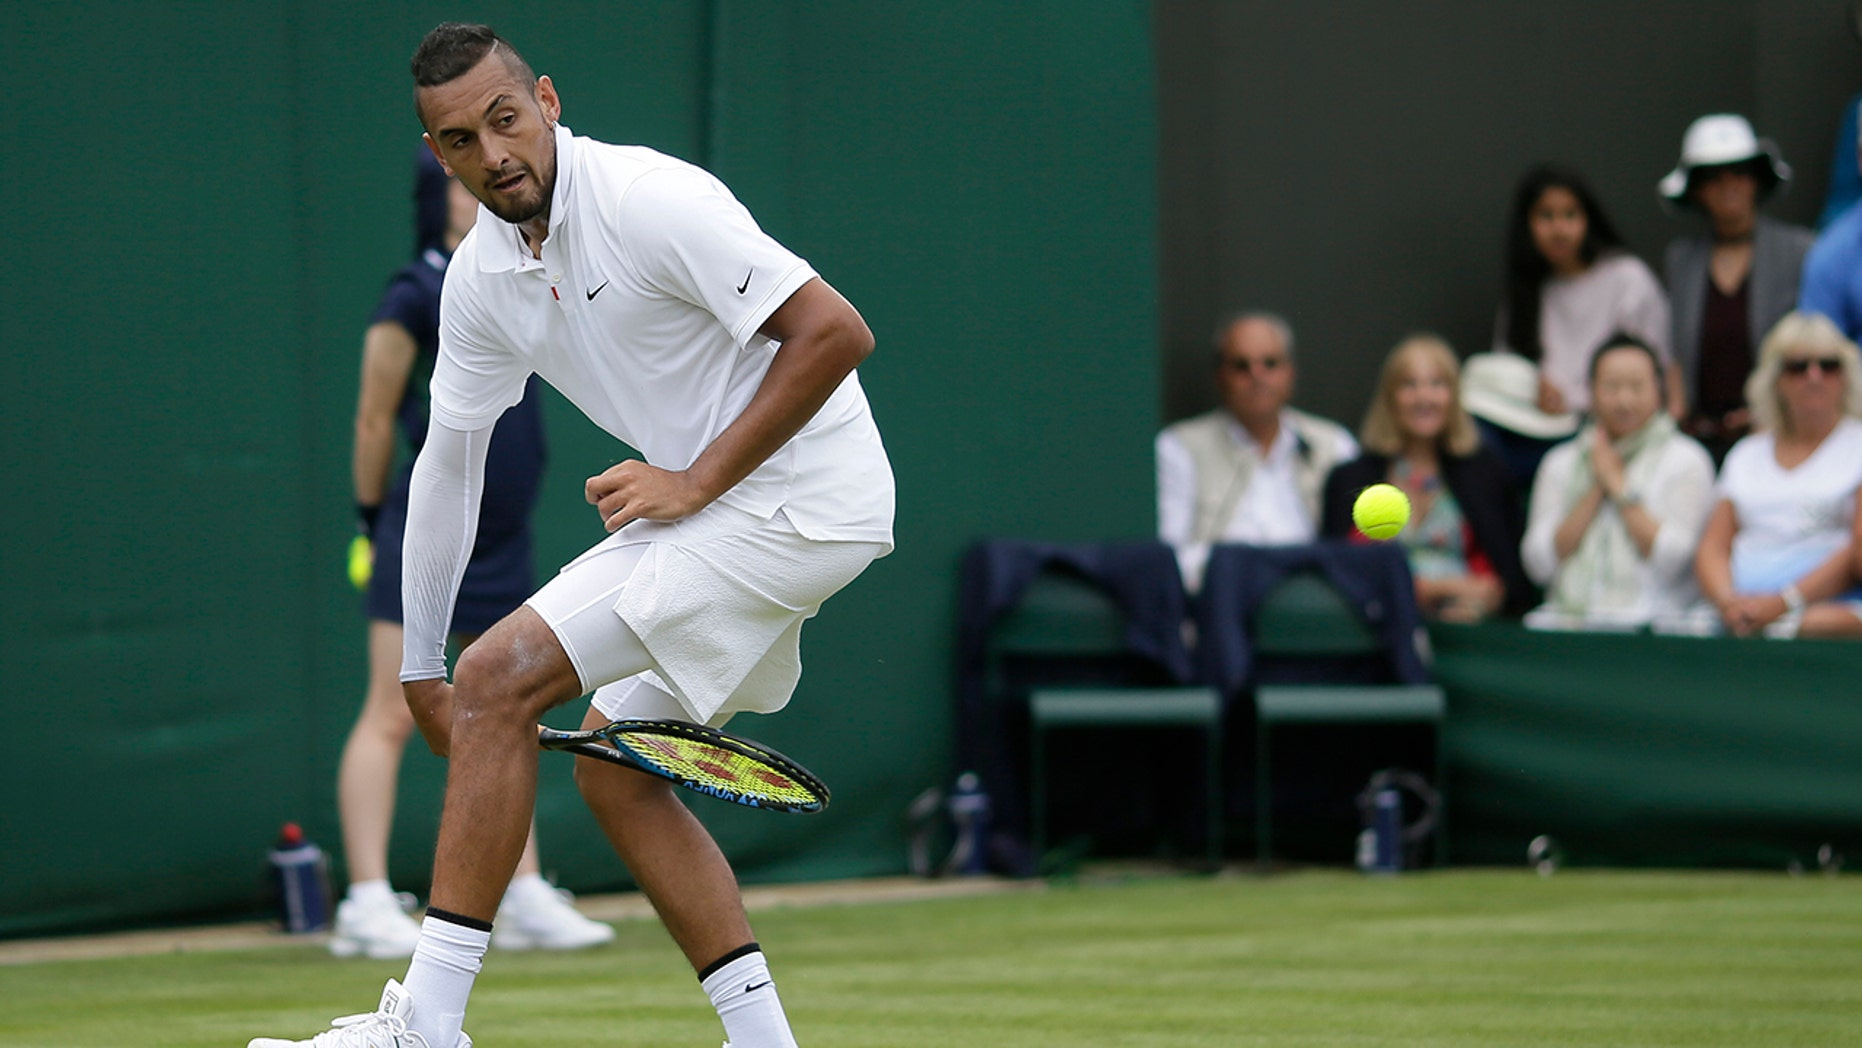 Australia's Nick Kyrgios returns the ball from between his legs to Australia's Jordan Thompson in a Men's singles match during day two of the Wimbledon Tennis Championships in London, Tuesday, July 2, 2019. (AP Photo/Tim Ireland)